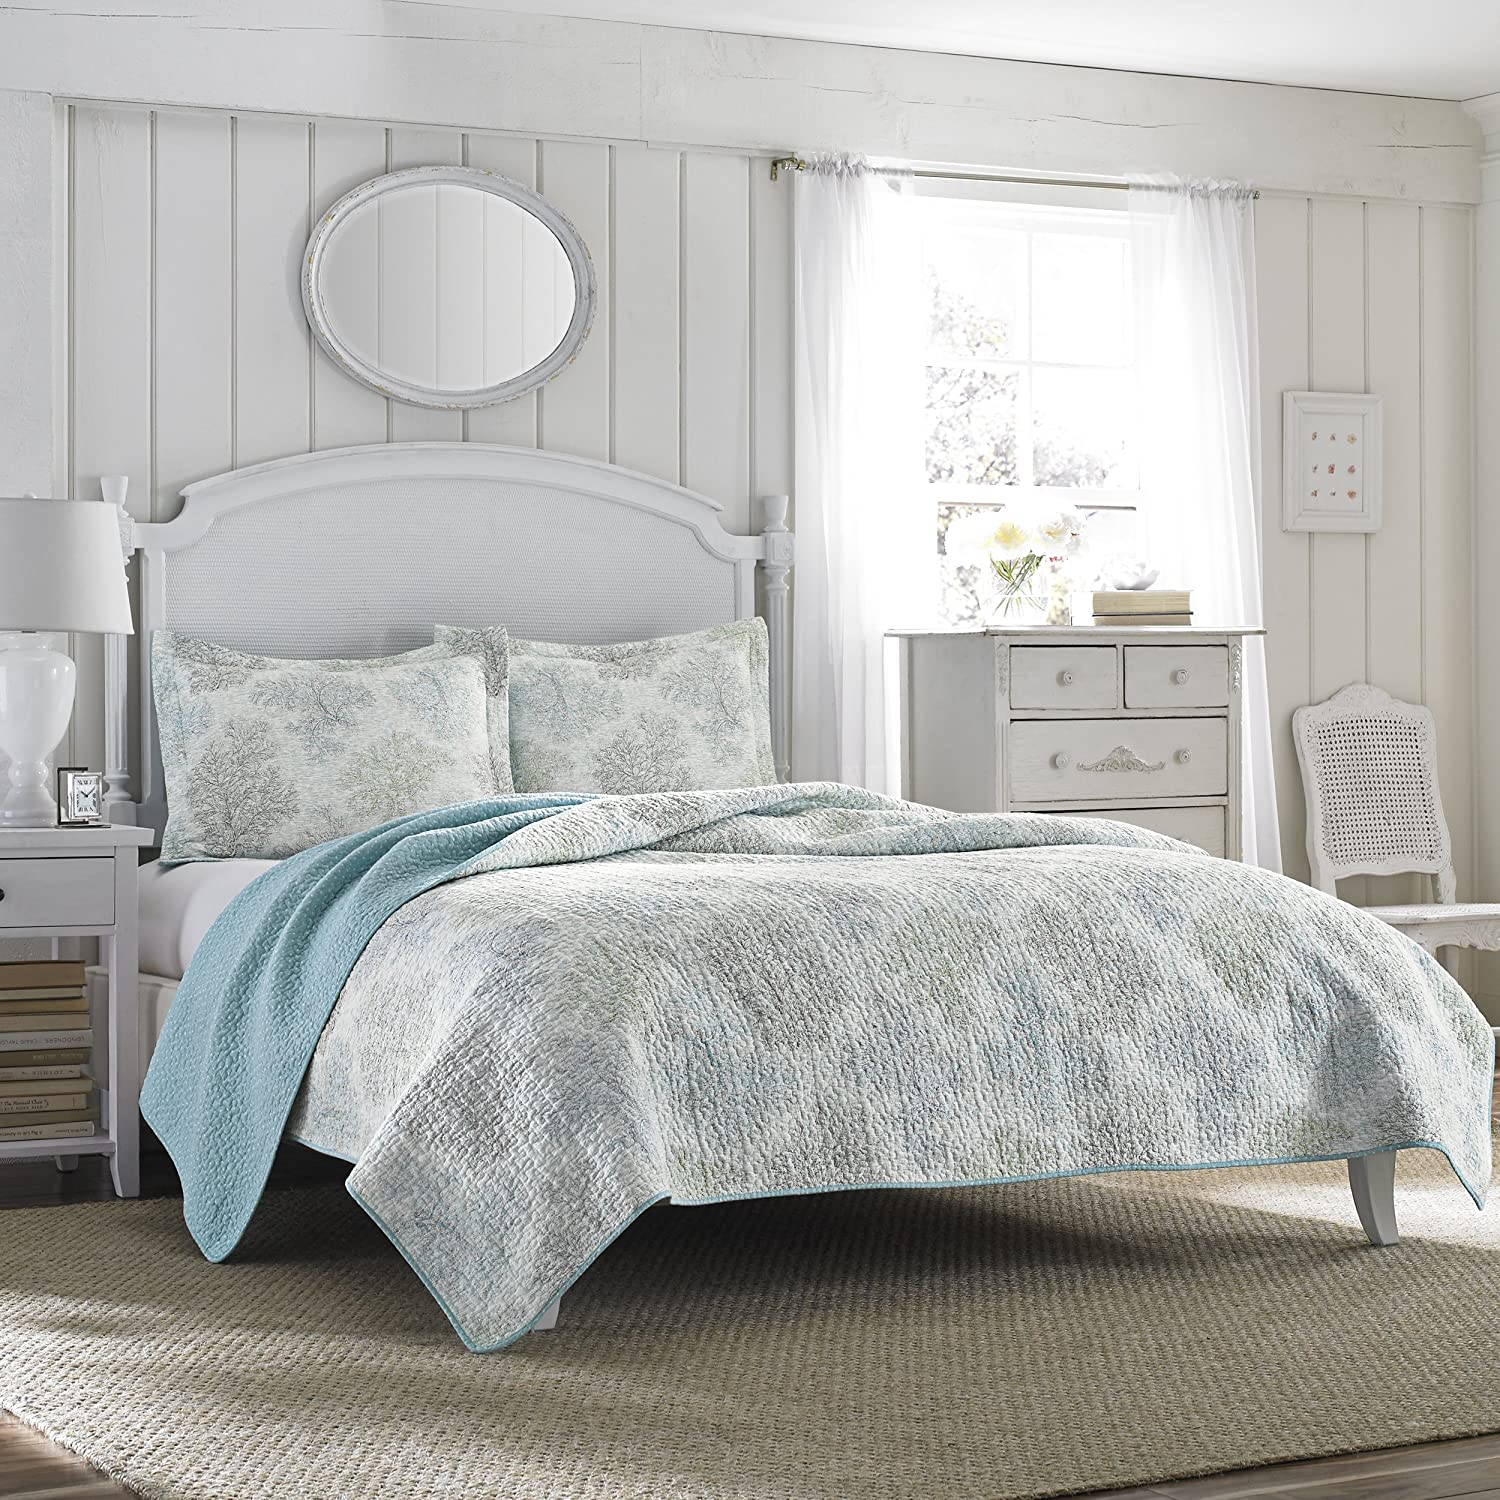 Amazoncom Laura Ashley Saltwater Reversible Quilt Set King - Laura ashley bedroom